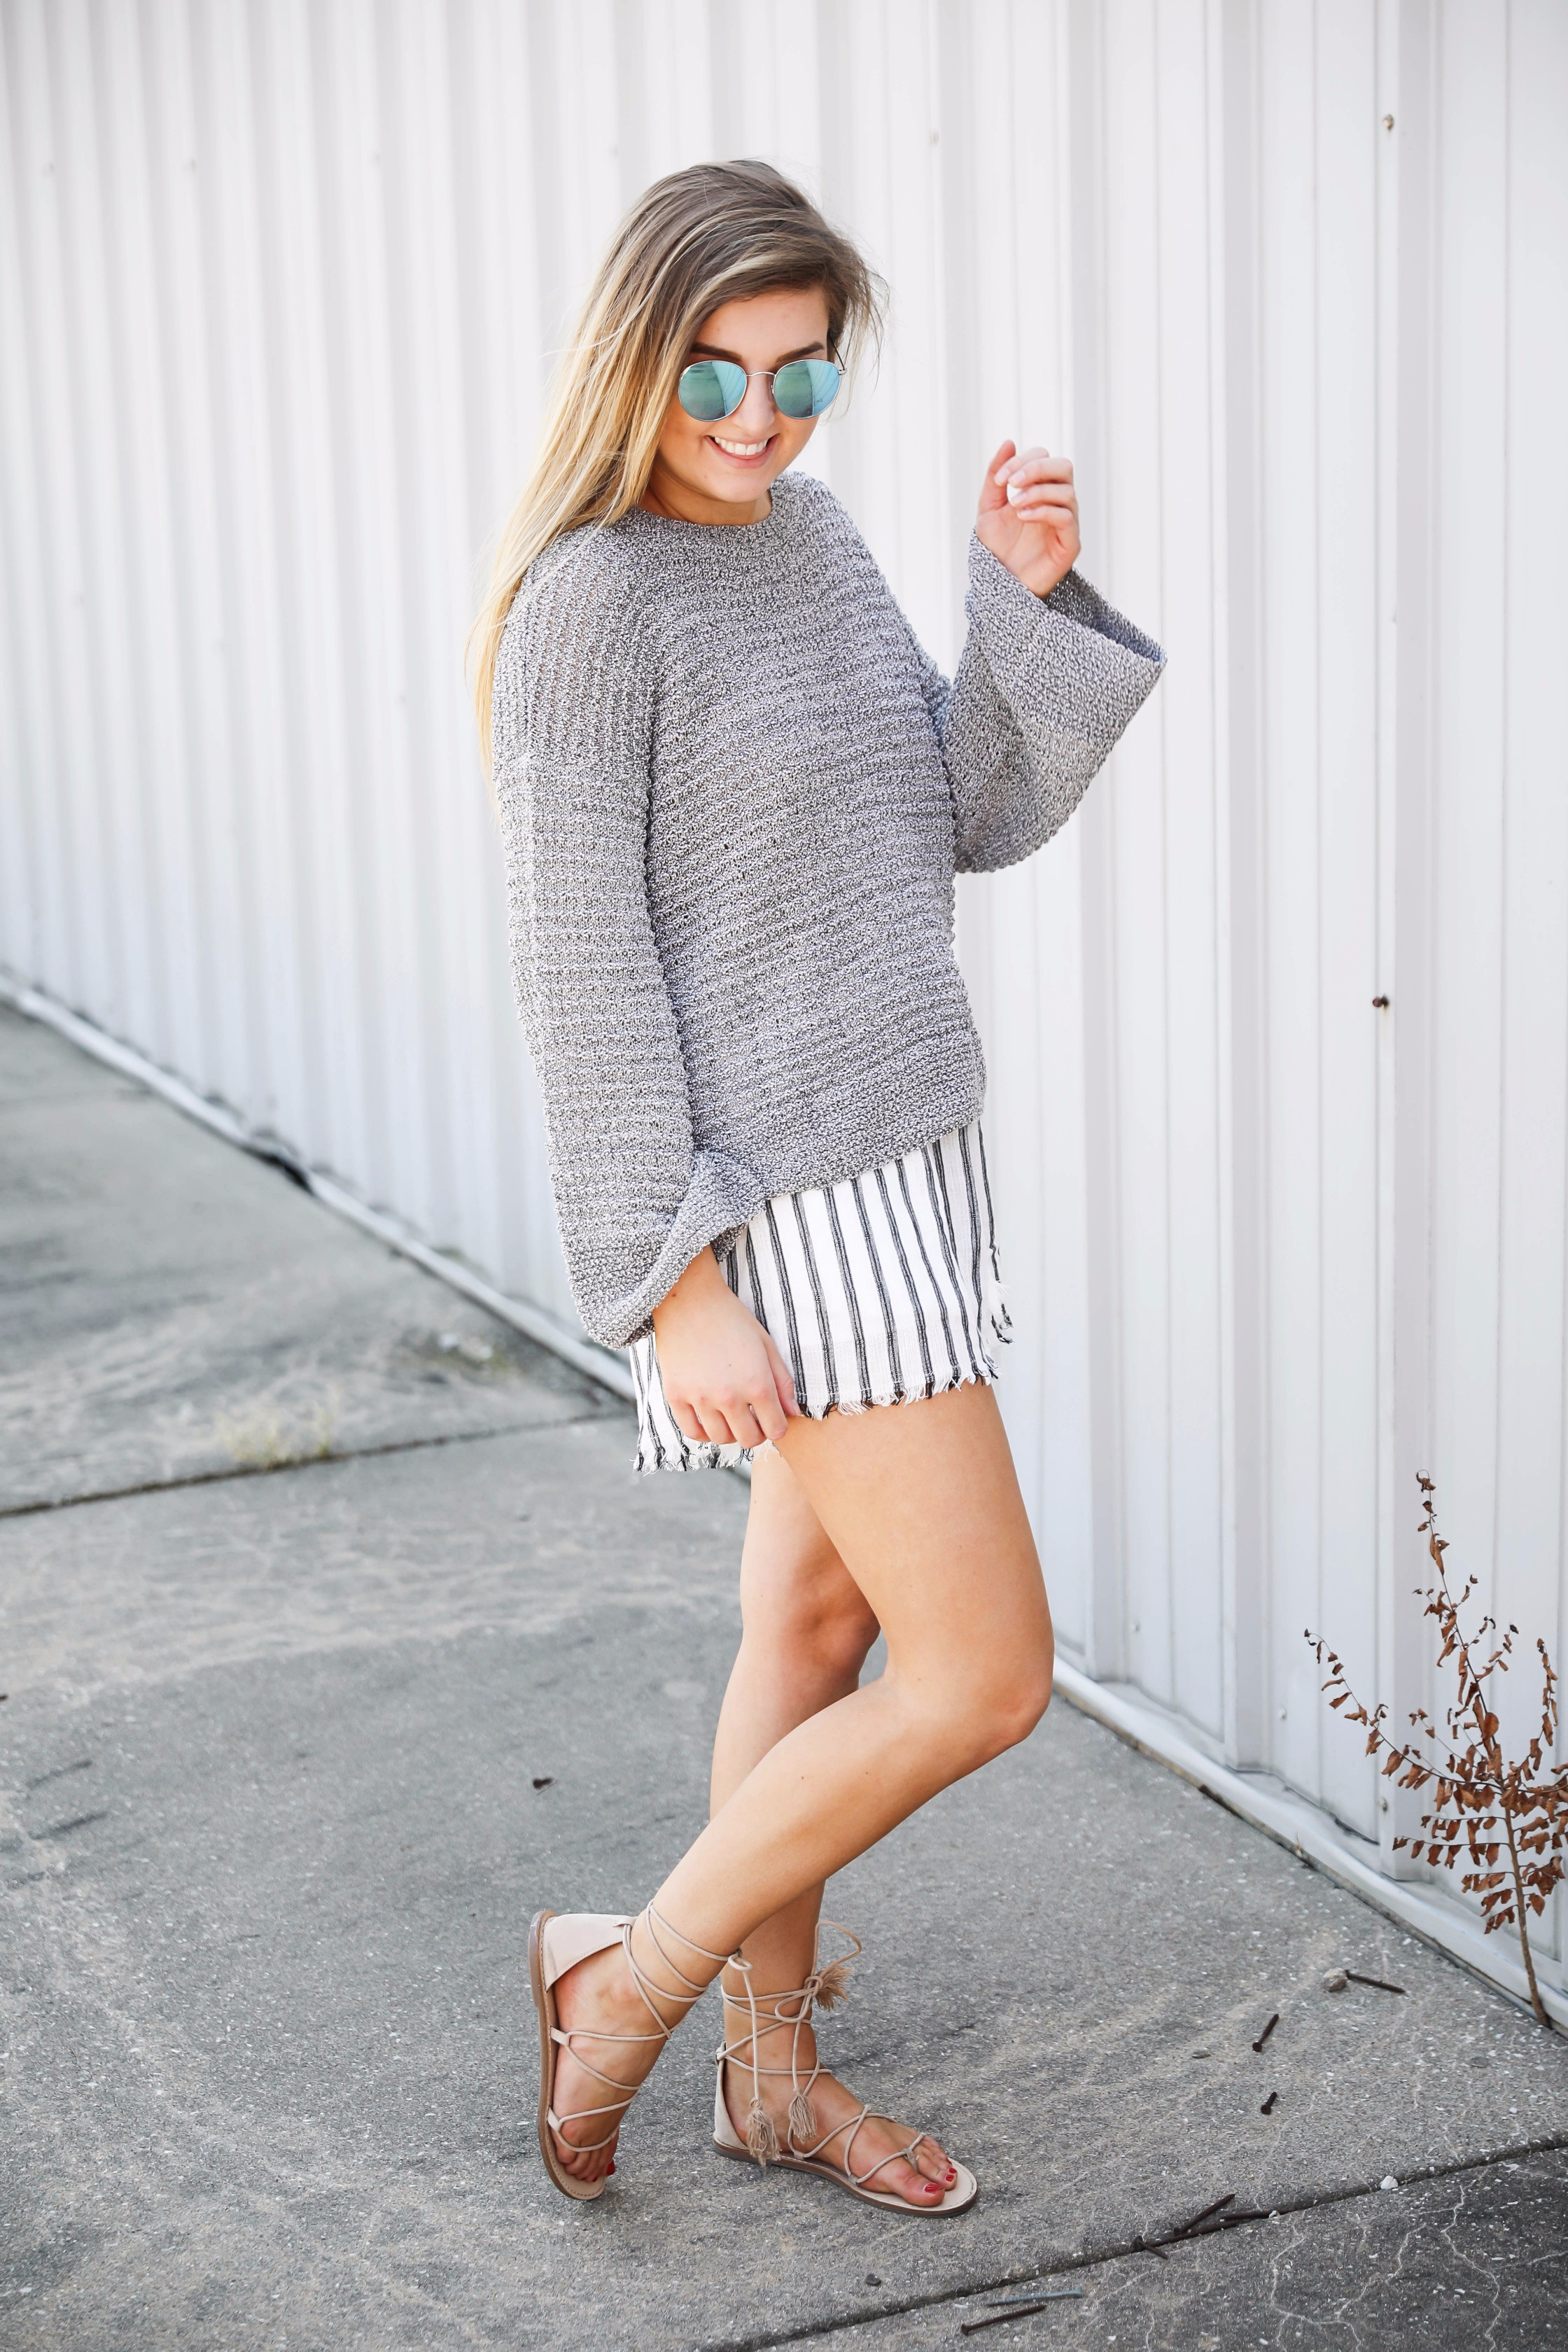 Open back sweater with striped nautical shorts by lauren lindmark on fashion blog daily dose of charm